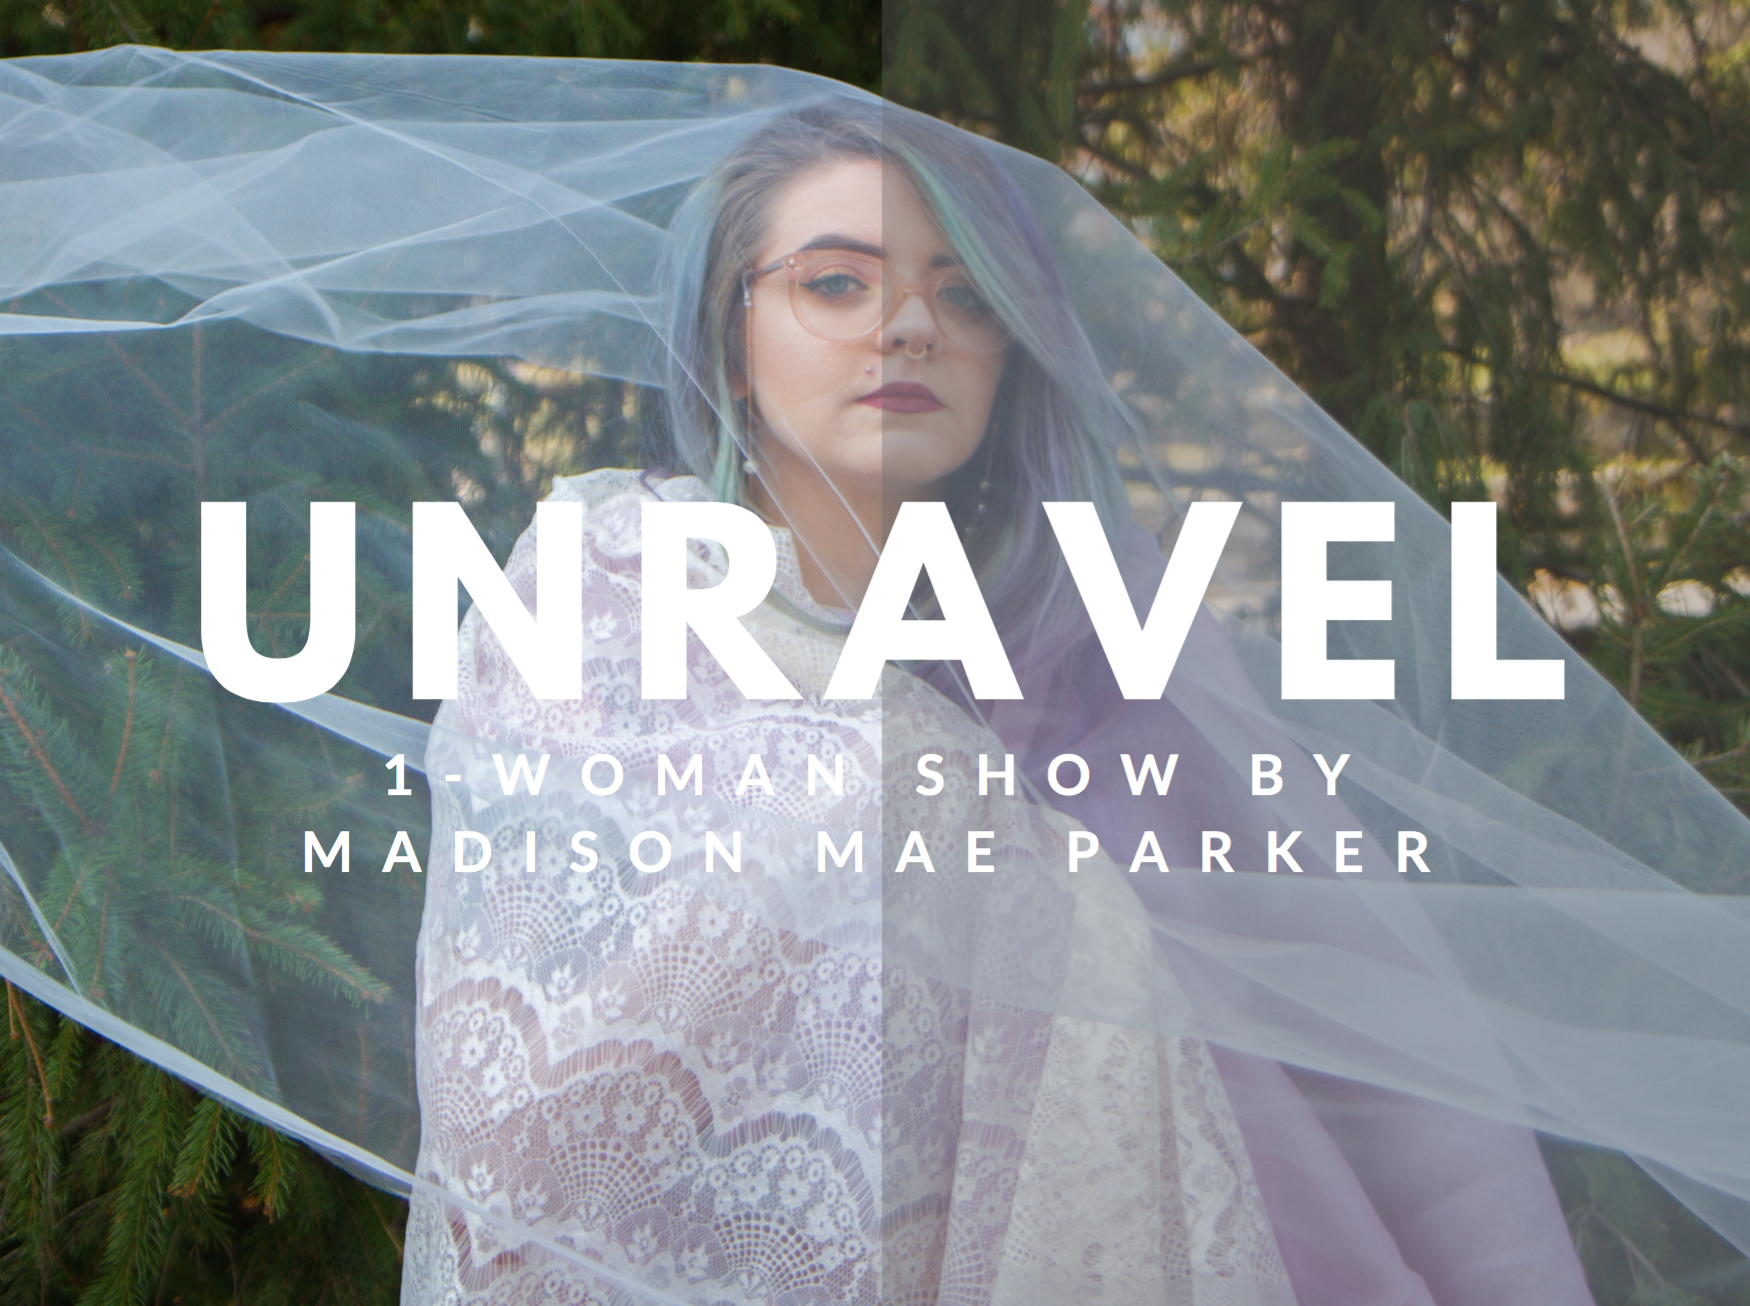 Writer, Performer, Co-Producer, 2017 - Unravel is a one-woman poetic-play that debuted in Kansas City. MO. Future production of Unravel will take place again. Stay tuned to catch the next show.